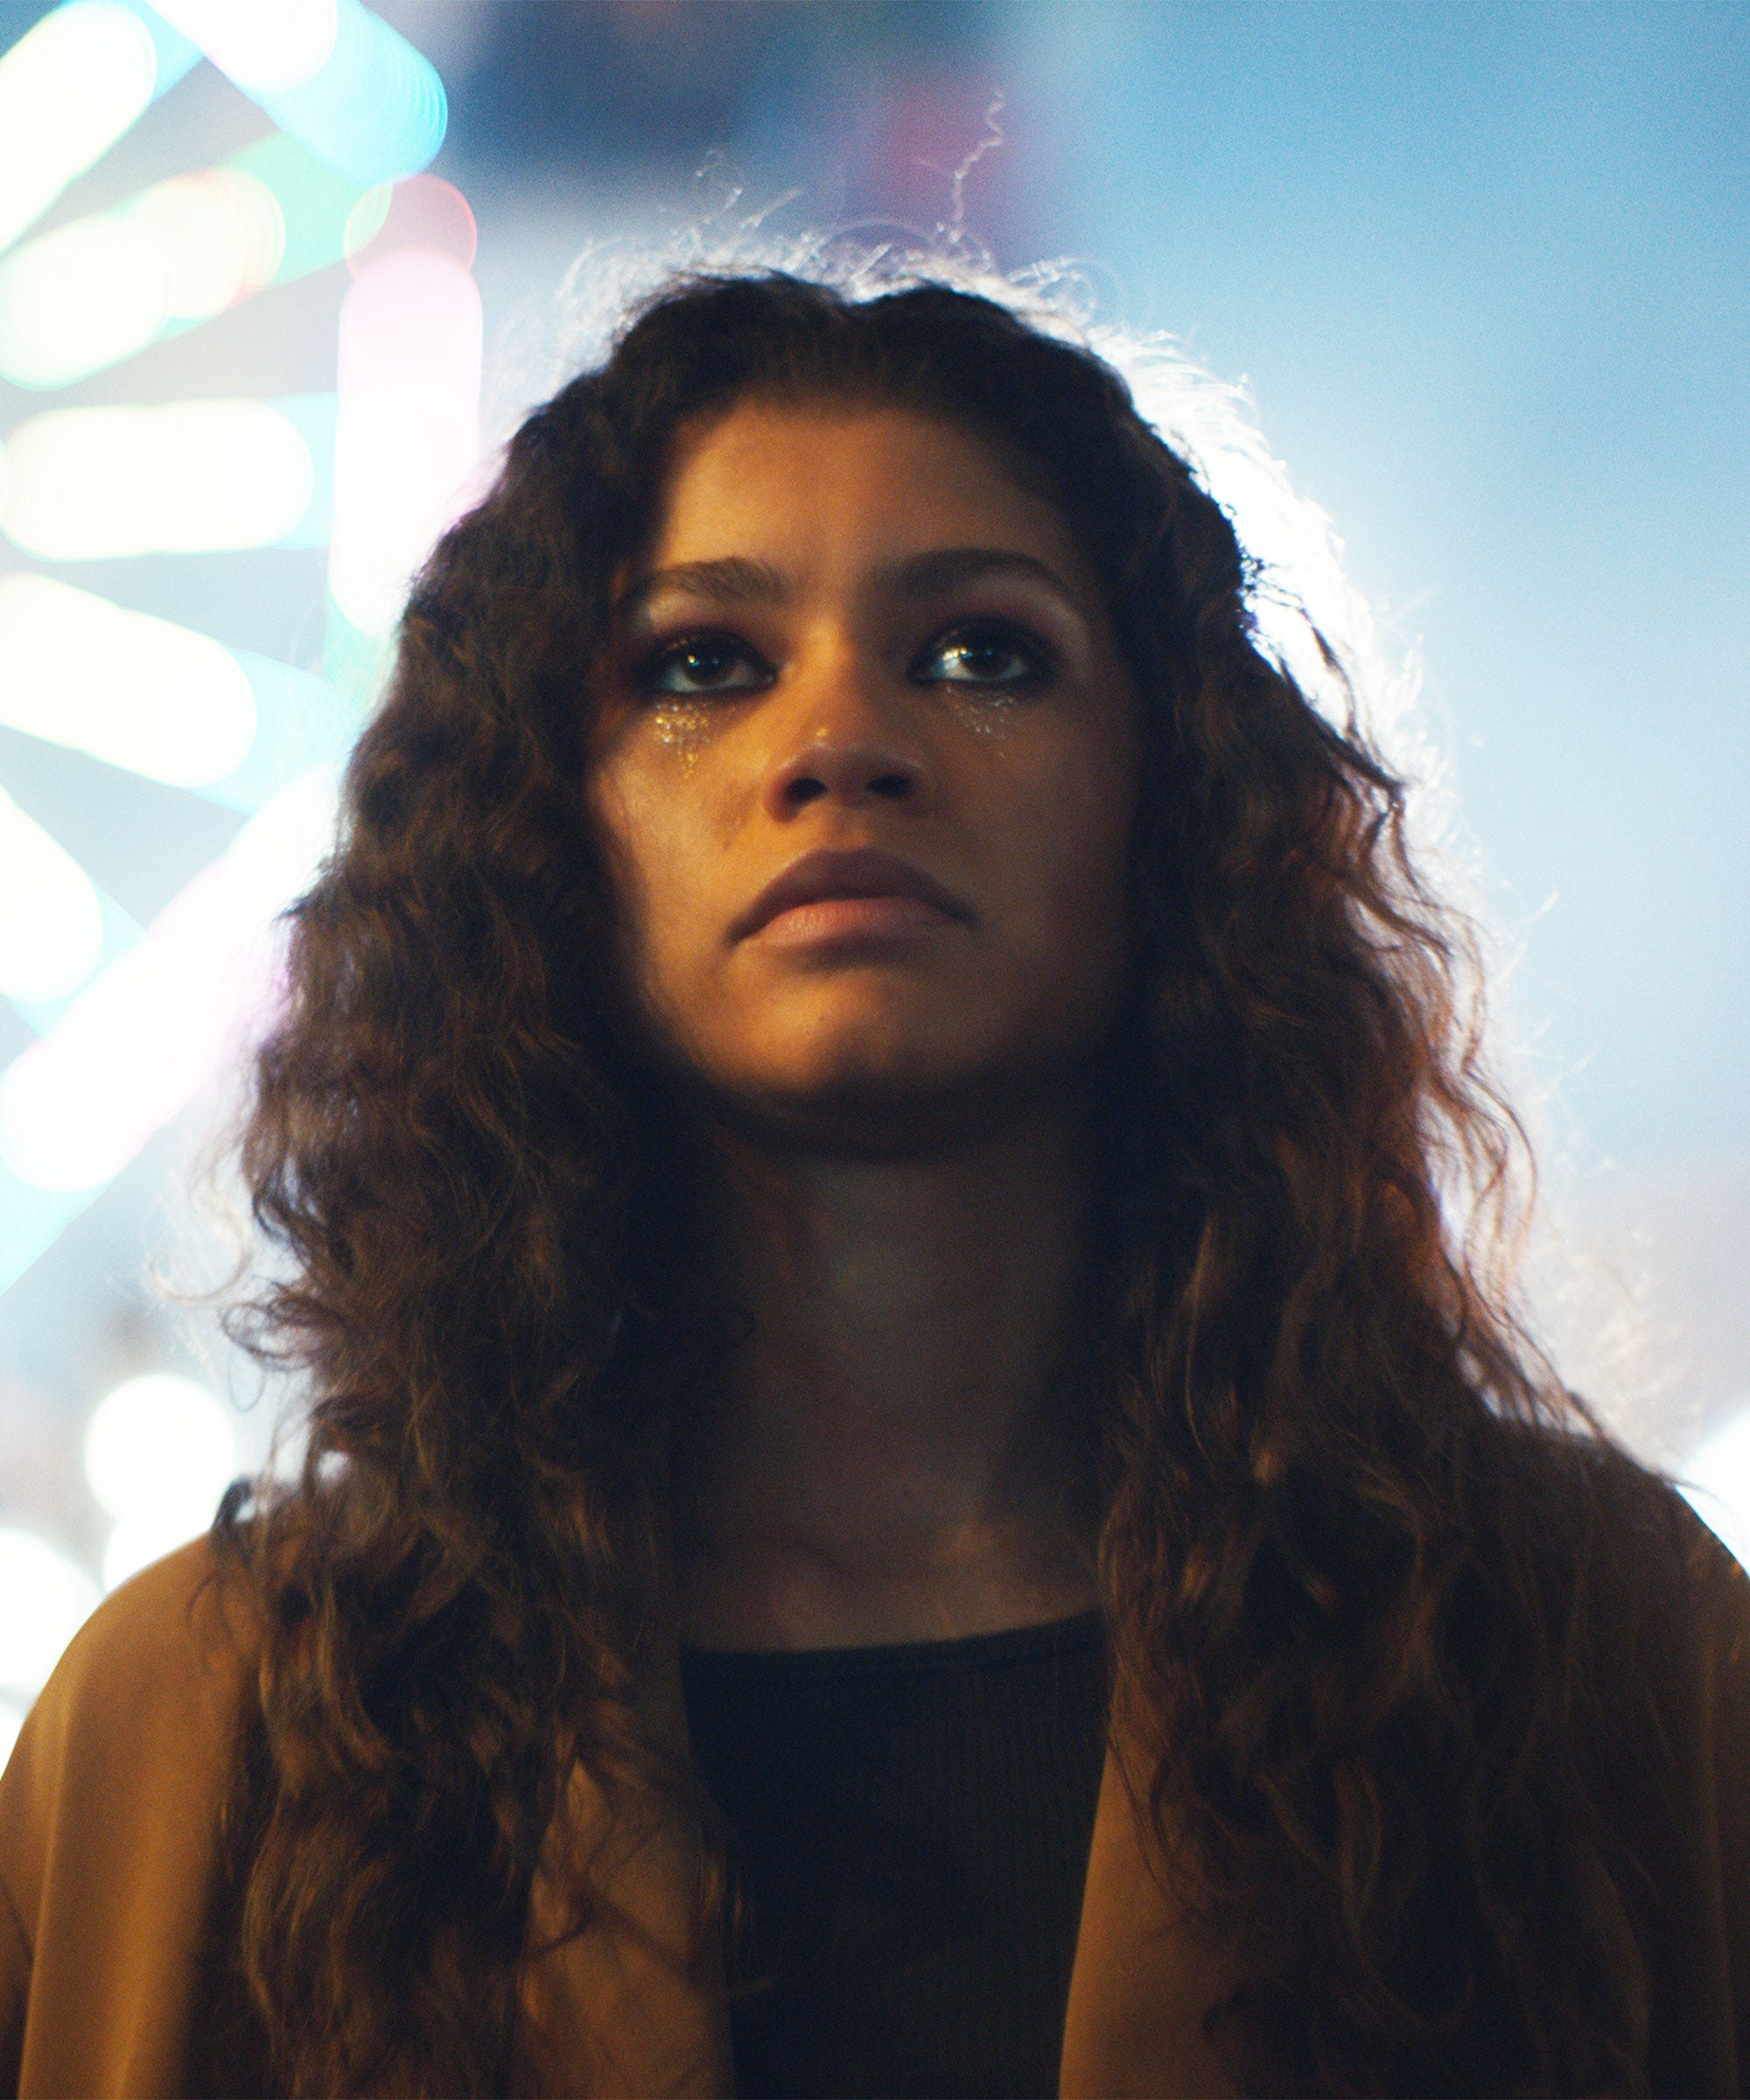 The Cast Of Euphoria Is Age-Appropriate For The Harsh, Dark Drama — Don't Fret